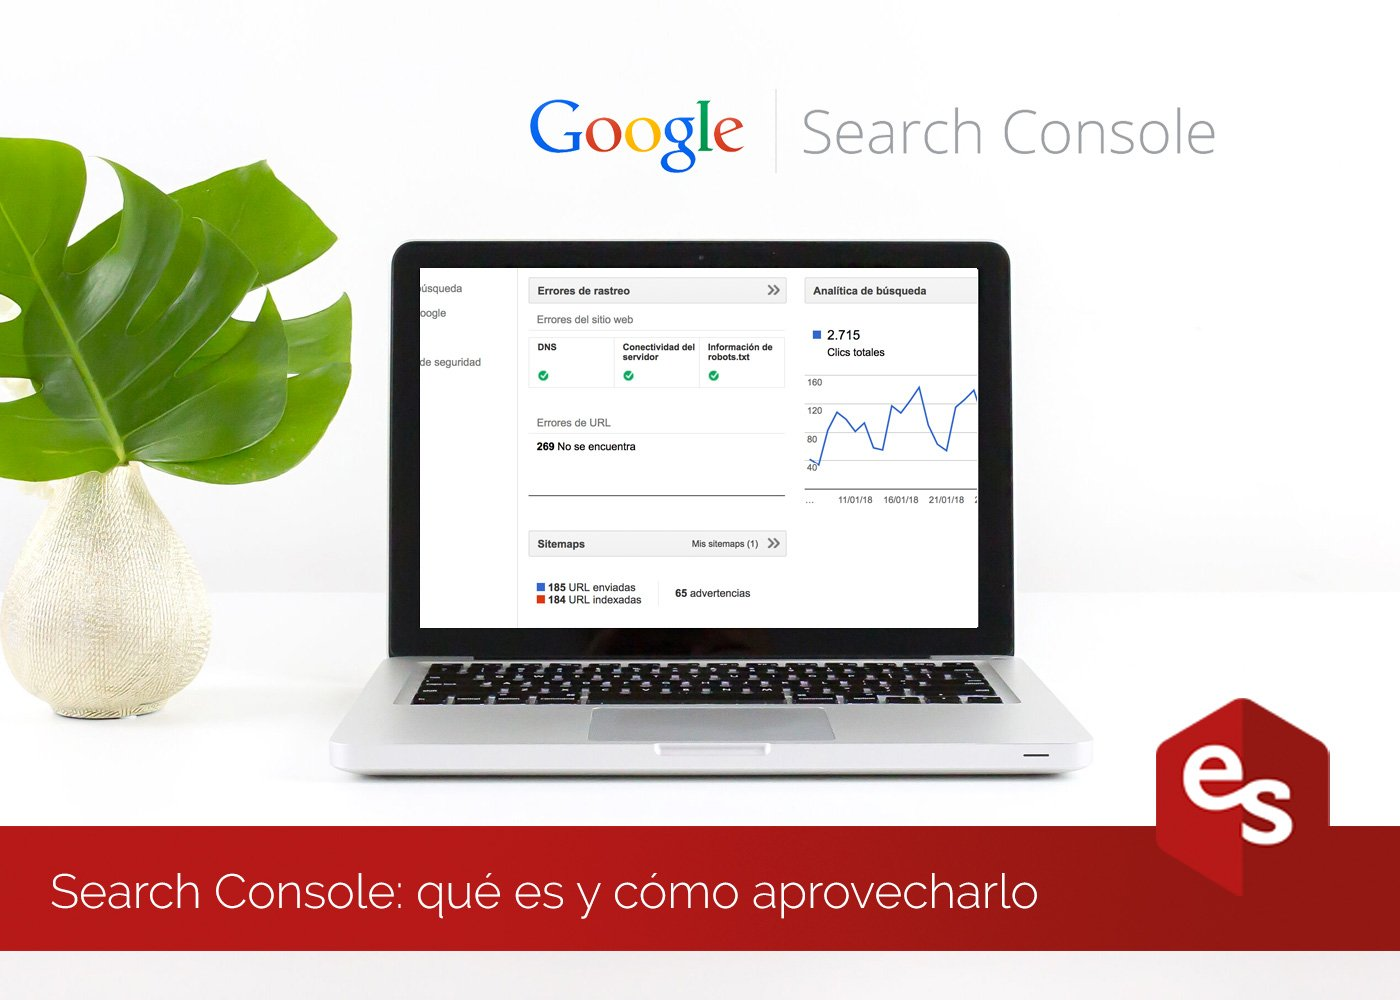 Google search console qu es y como aprovecharlo for Search console